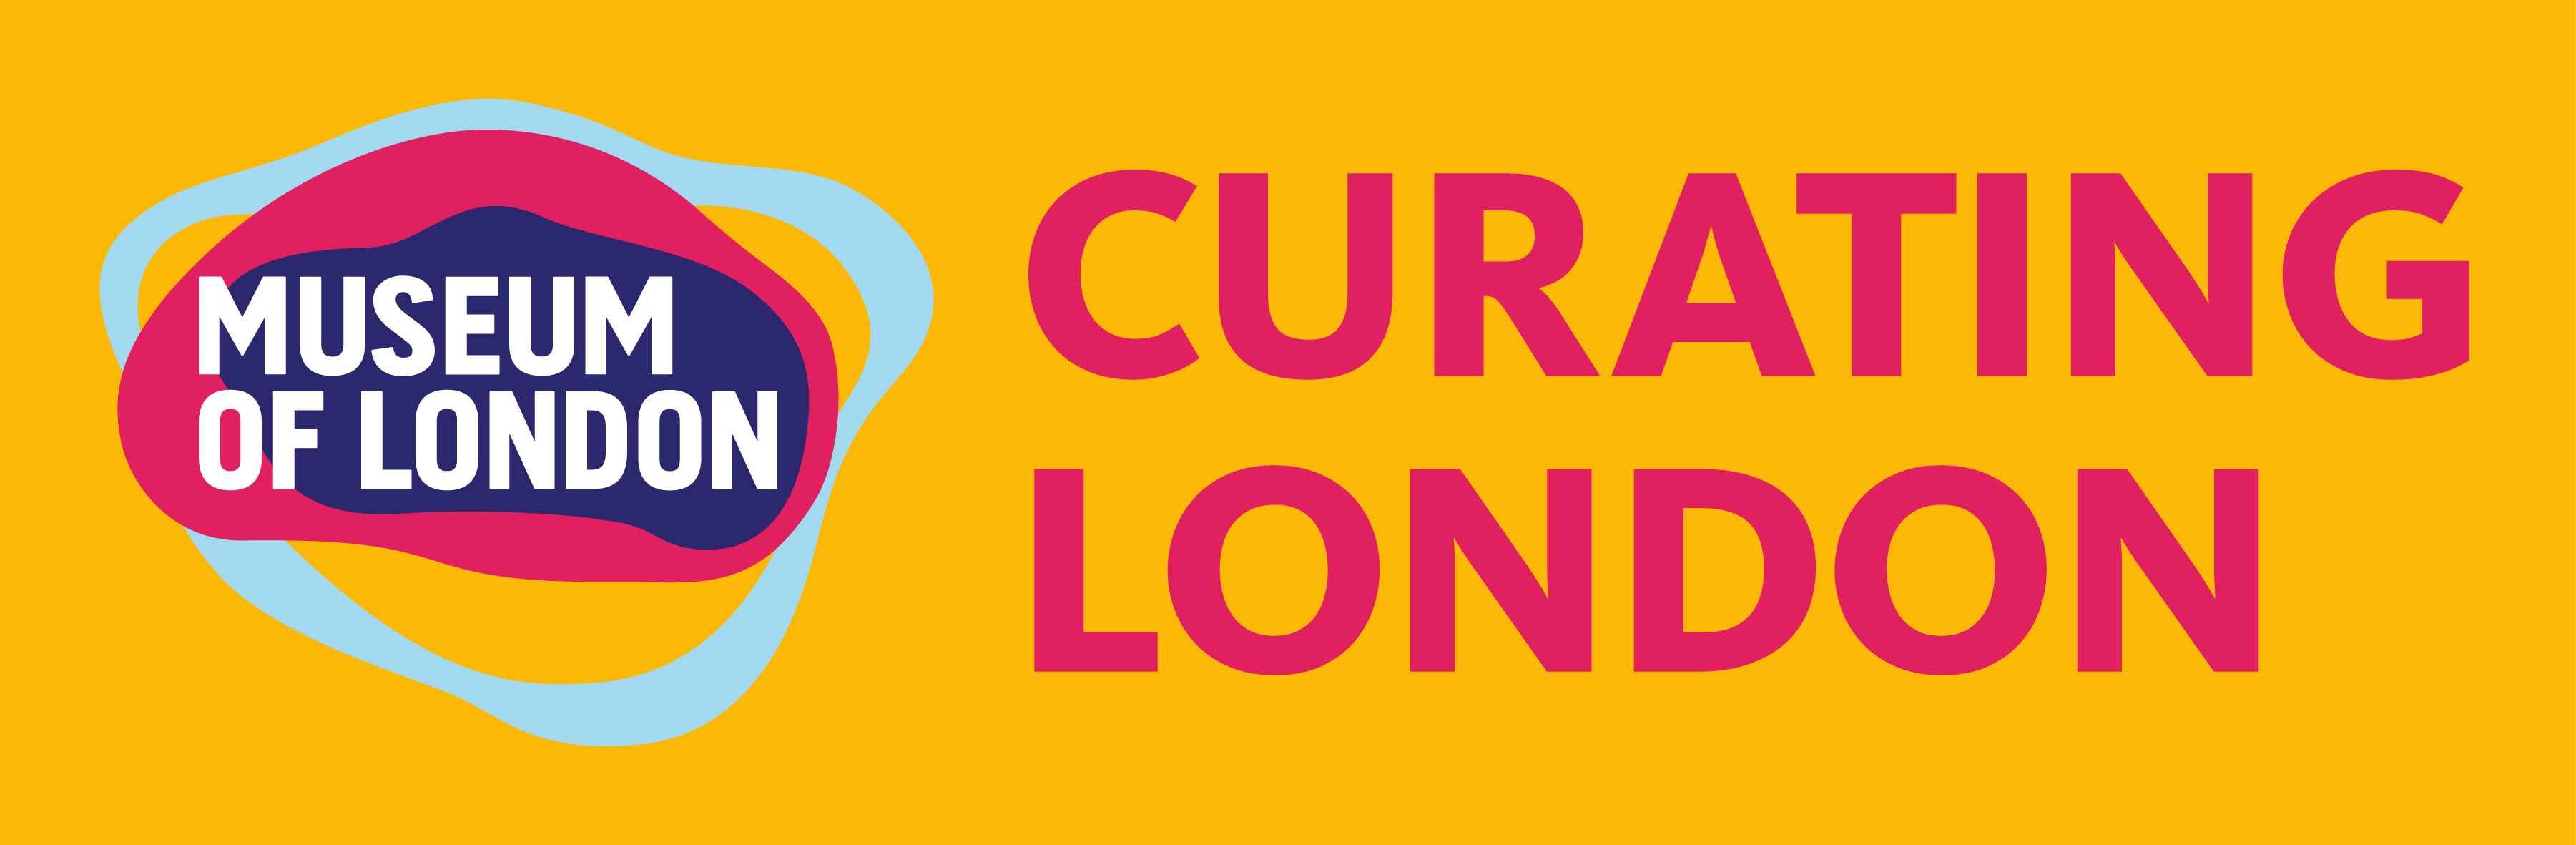 Curating London